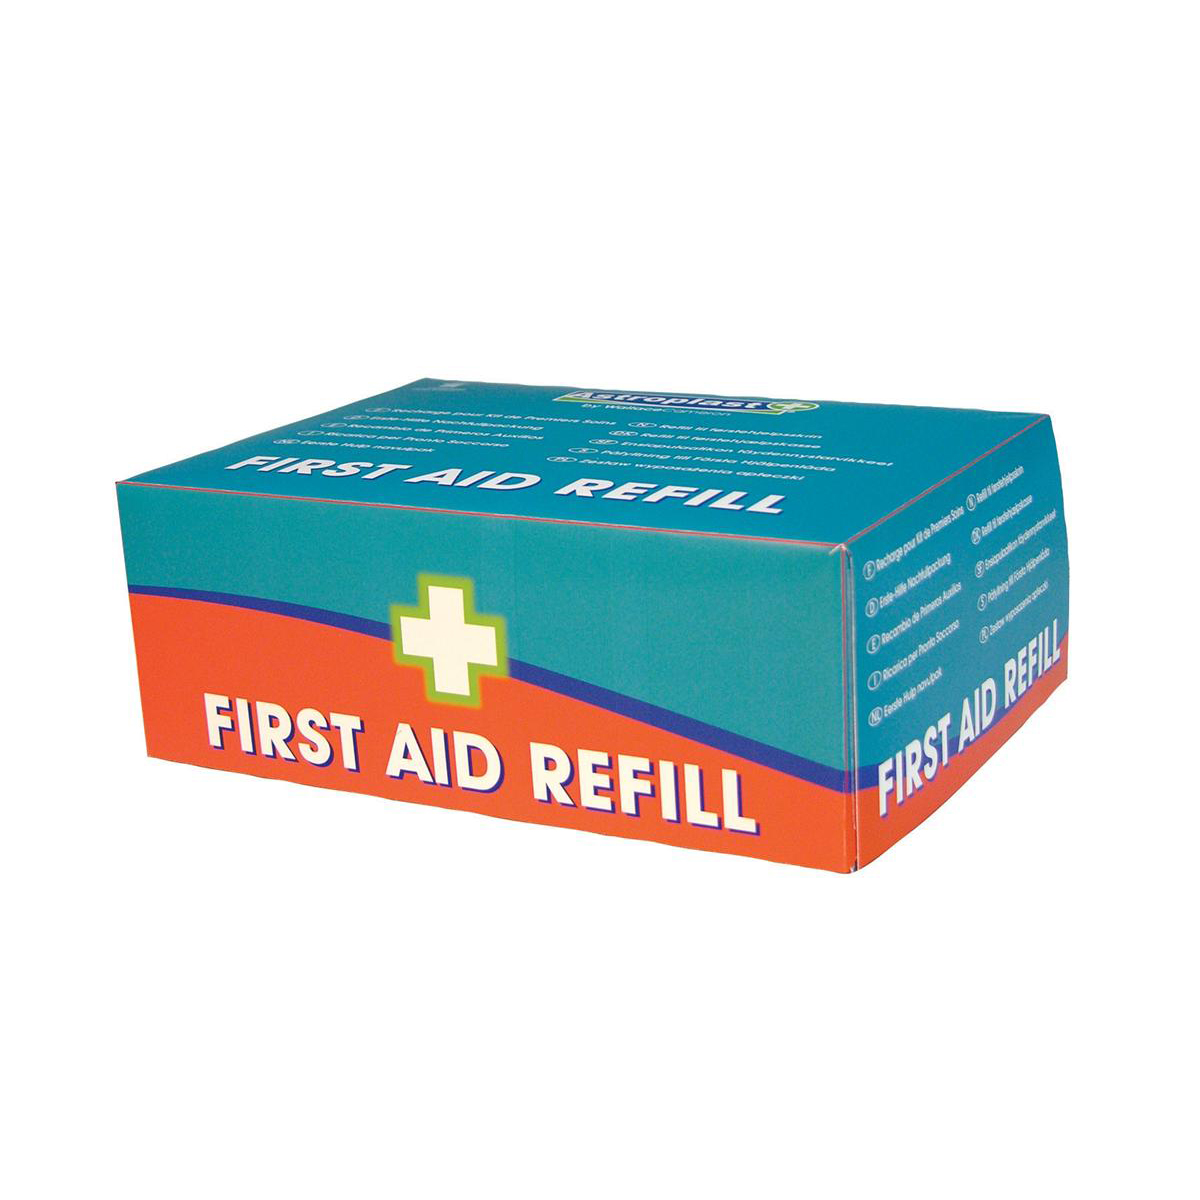 Wallace Cameron Refill for 20 Person First-Aid Kit HS2 Ref 1035010